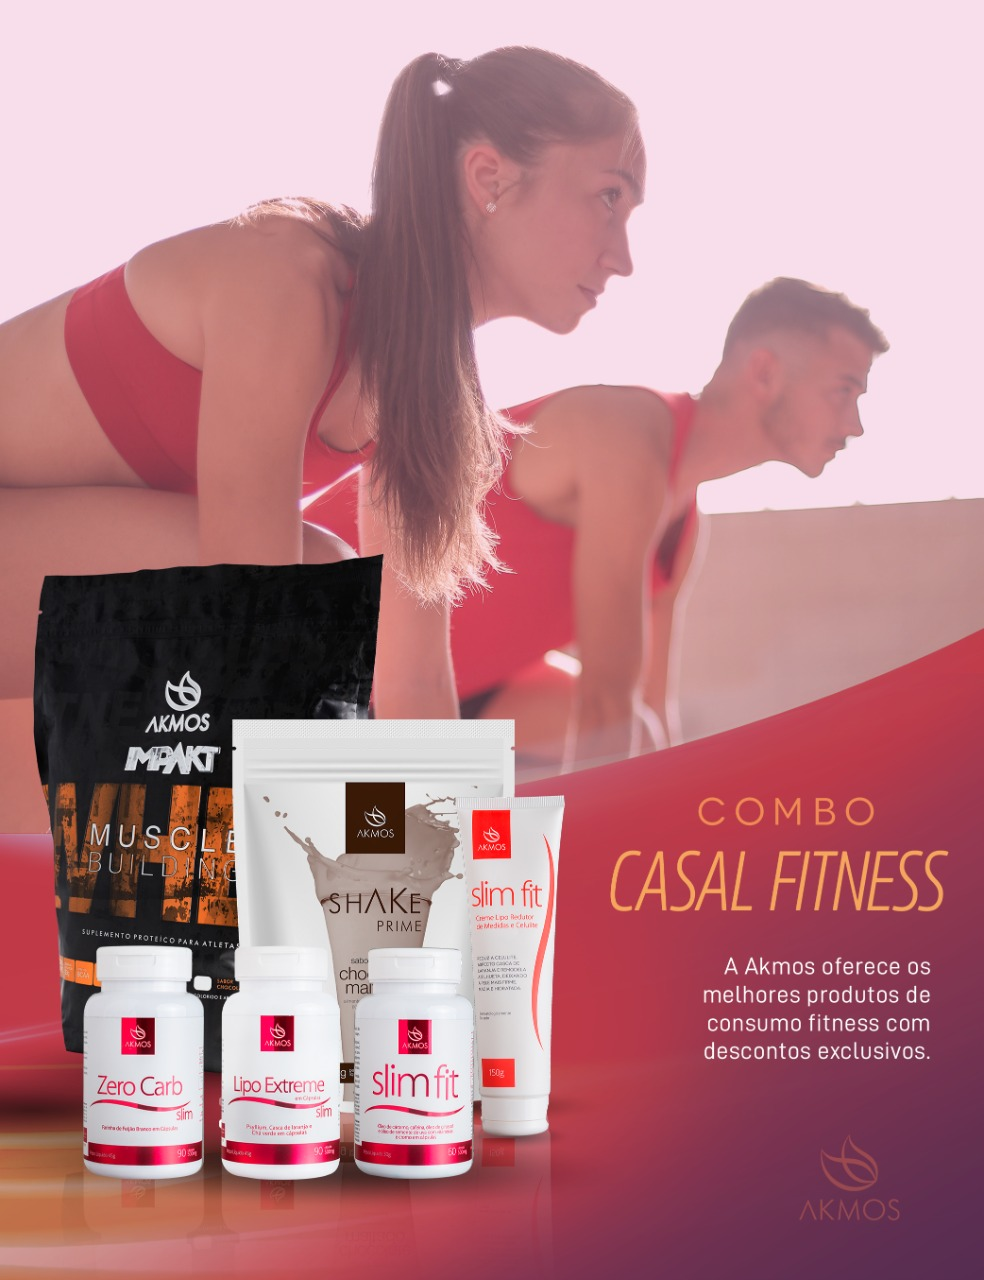 COMBO CONSUMO INTELIGENTE CASAL FITNESS  - WHEY PROTEIN CHOCOLATE + SHAKE  PRIME BAUNILHA Akmos